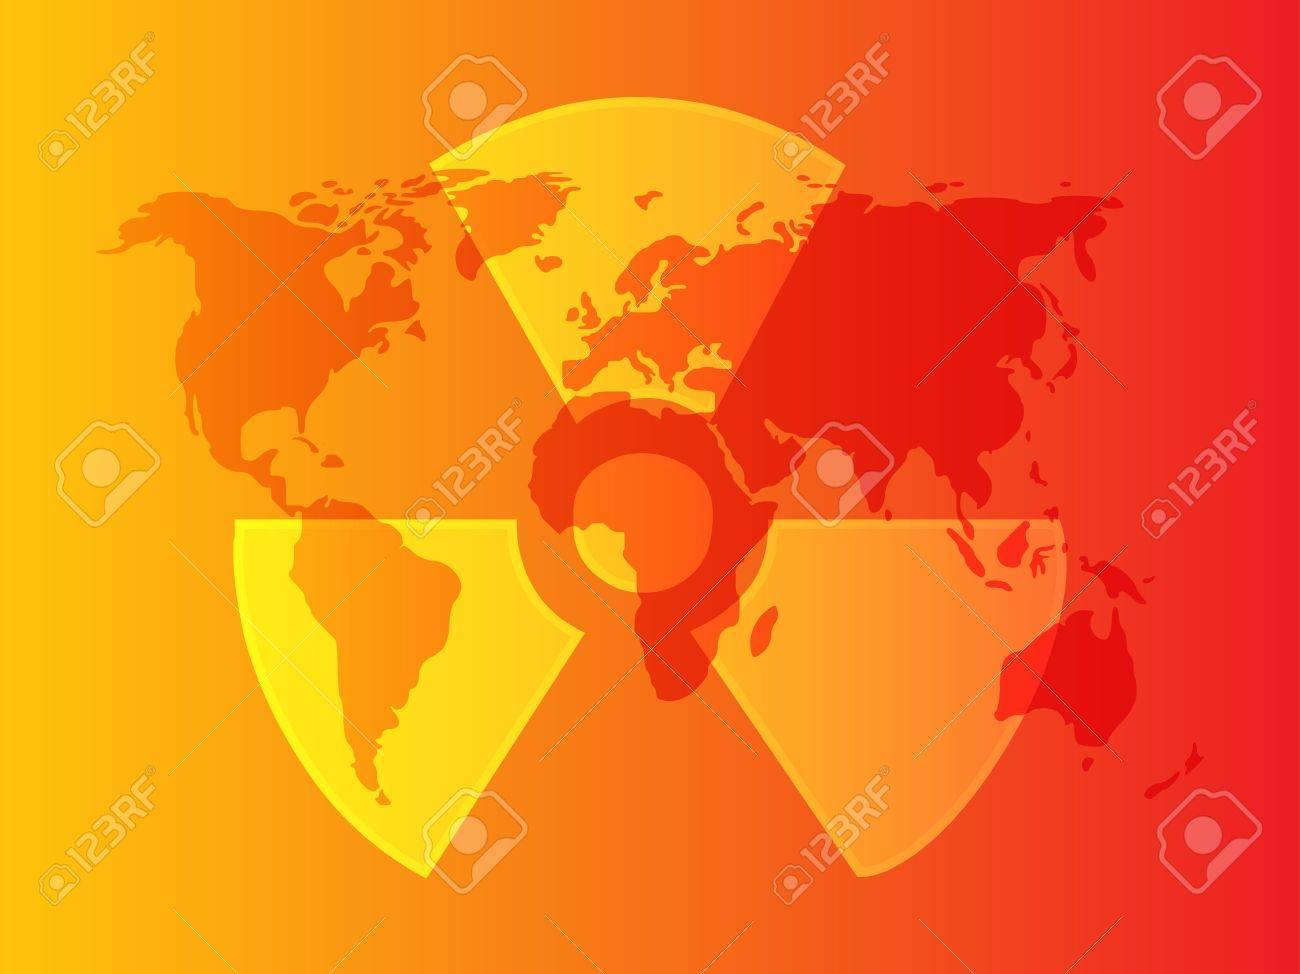 Illustration of radiation hazard warning alert symbol Stock Photo - 6164686